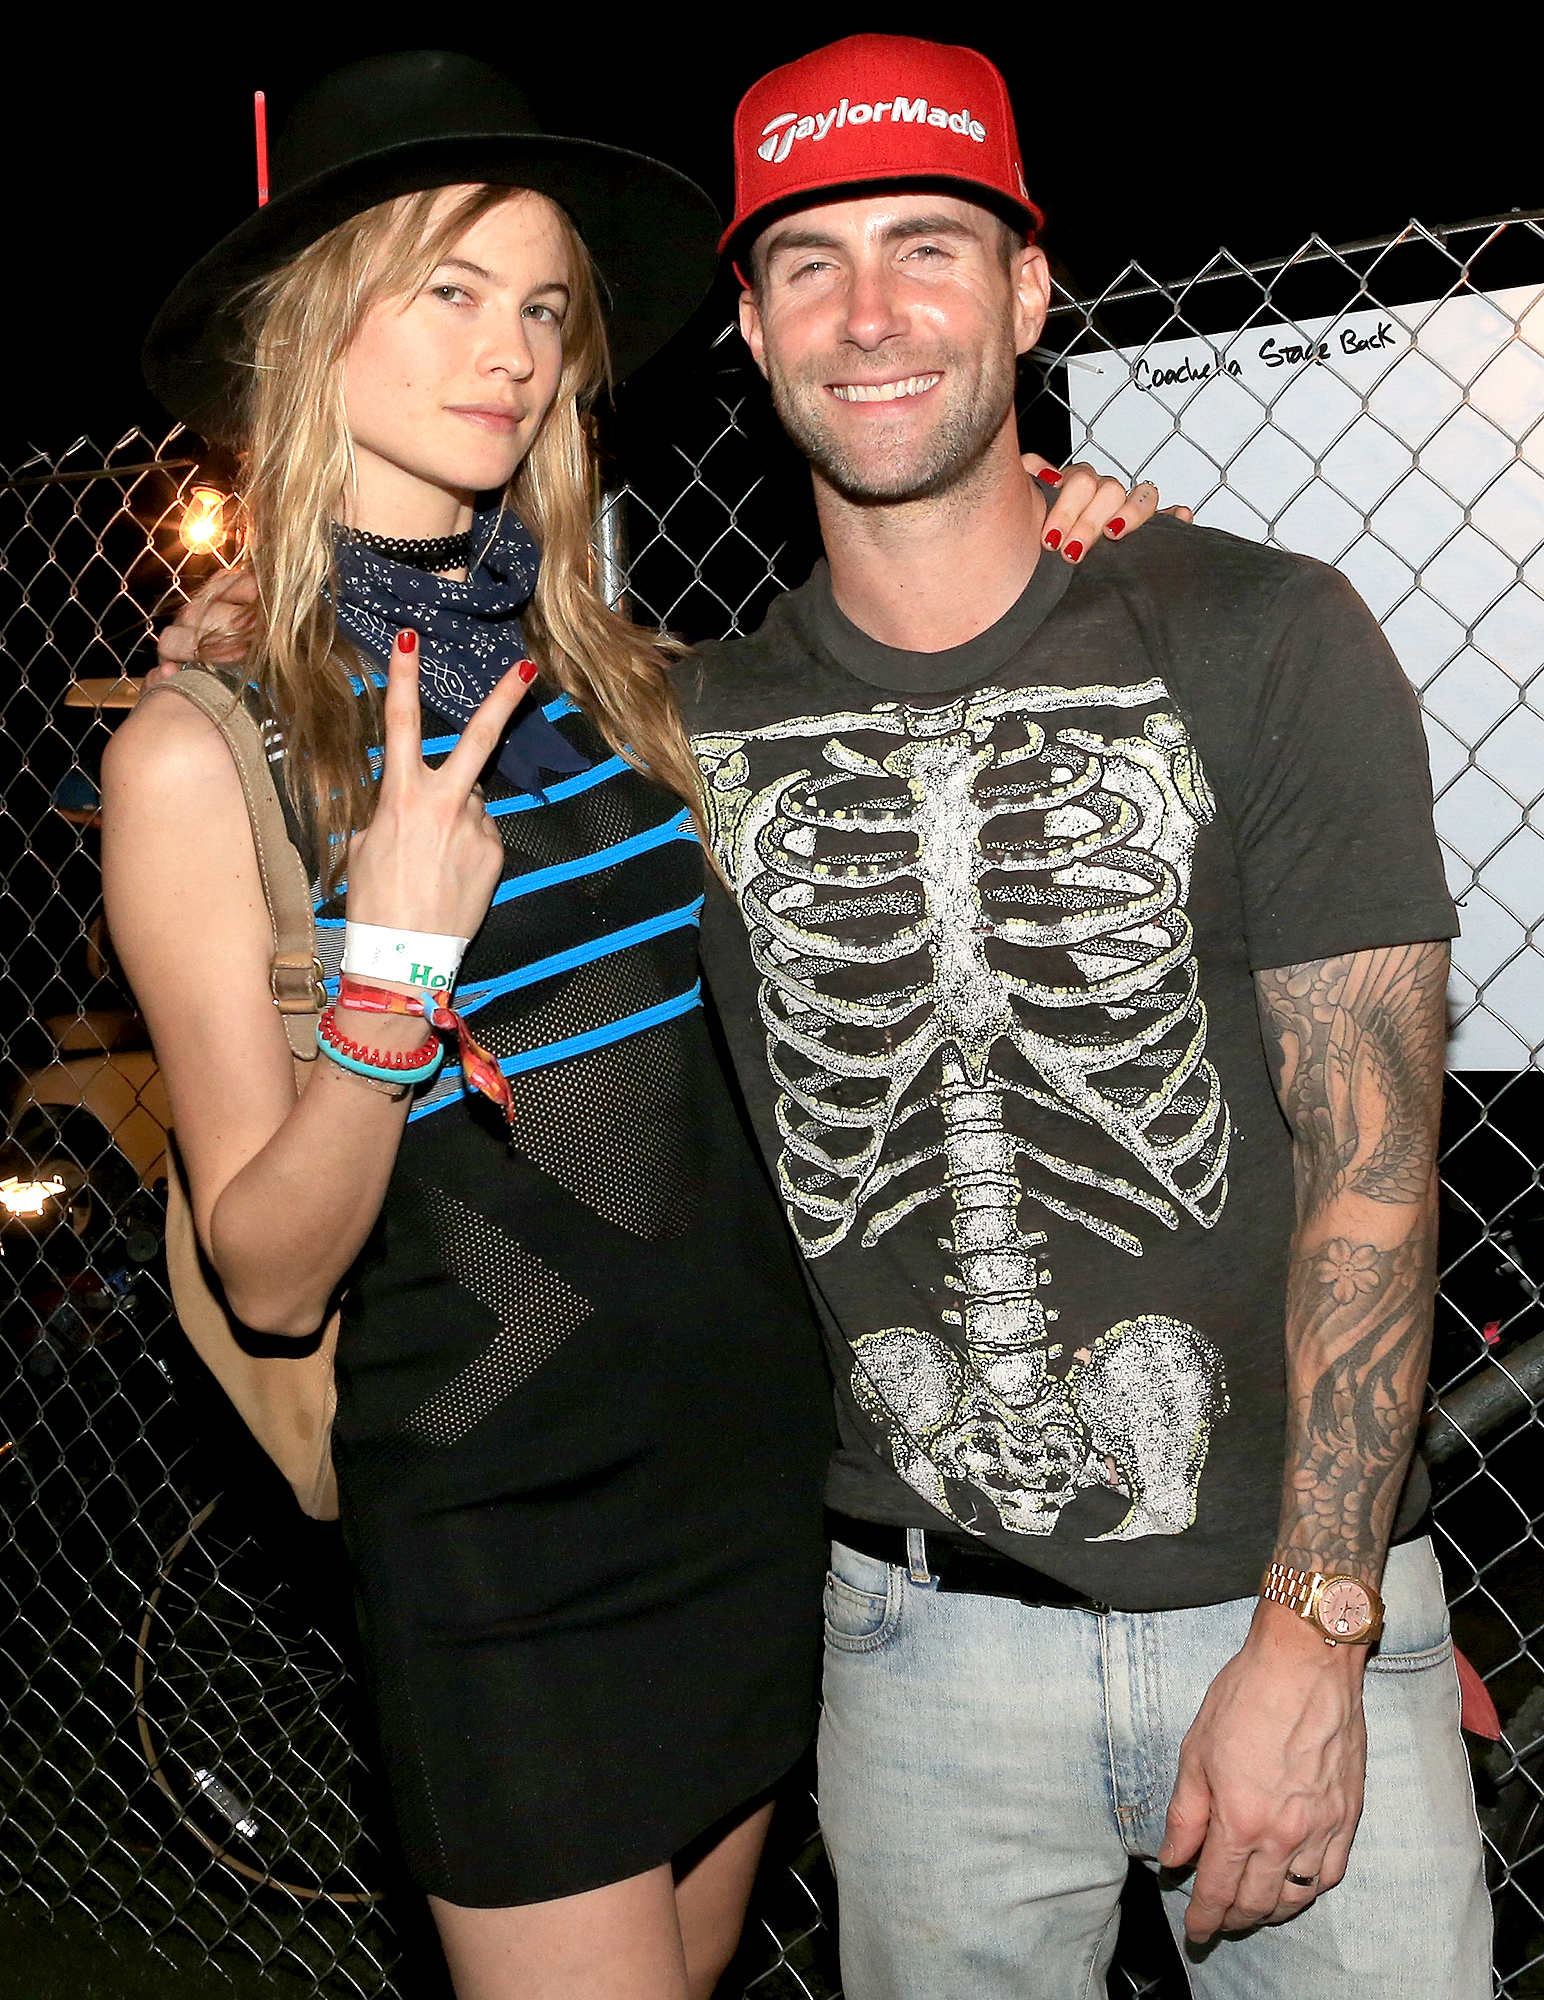 Behati-Prinsloo-Adam-levine-coachella - INDIO, CA – APRIL 10: Model Behati Prinsloo (L) and musician Adam Levine attend day 1 of the 2015 Coachella Valley Music & Arts Festival (Weekend 1) at the Empire Polo Club on April 10, 2015 in Indio, California. (Photo by Christopher Polk/Getty Images for Coachella)